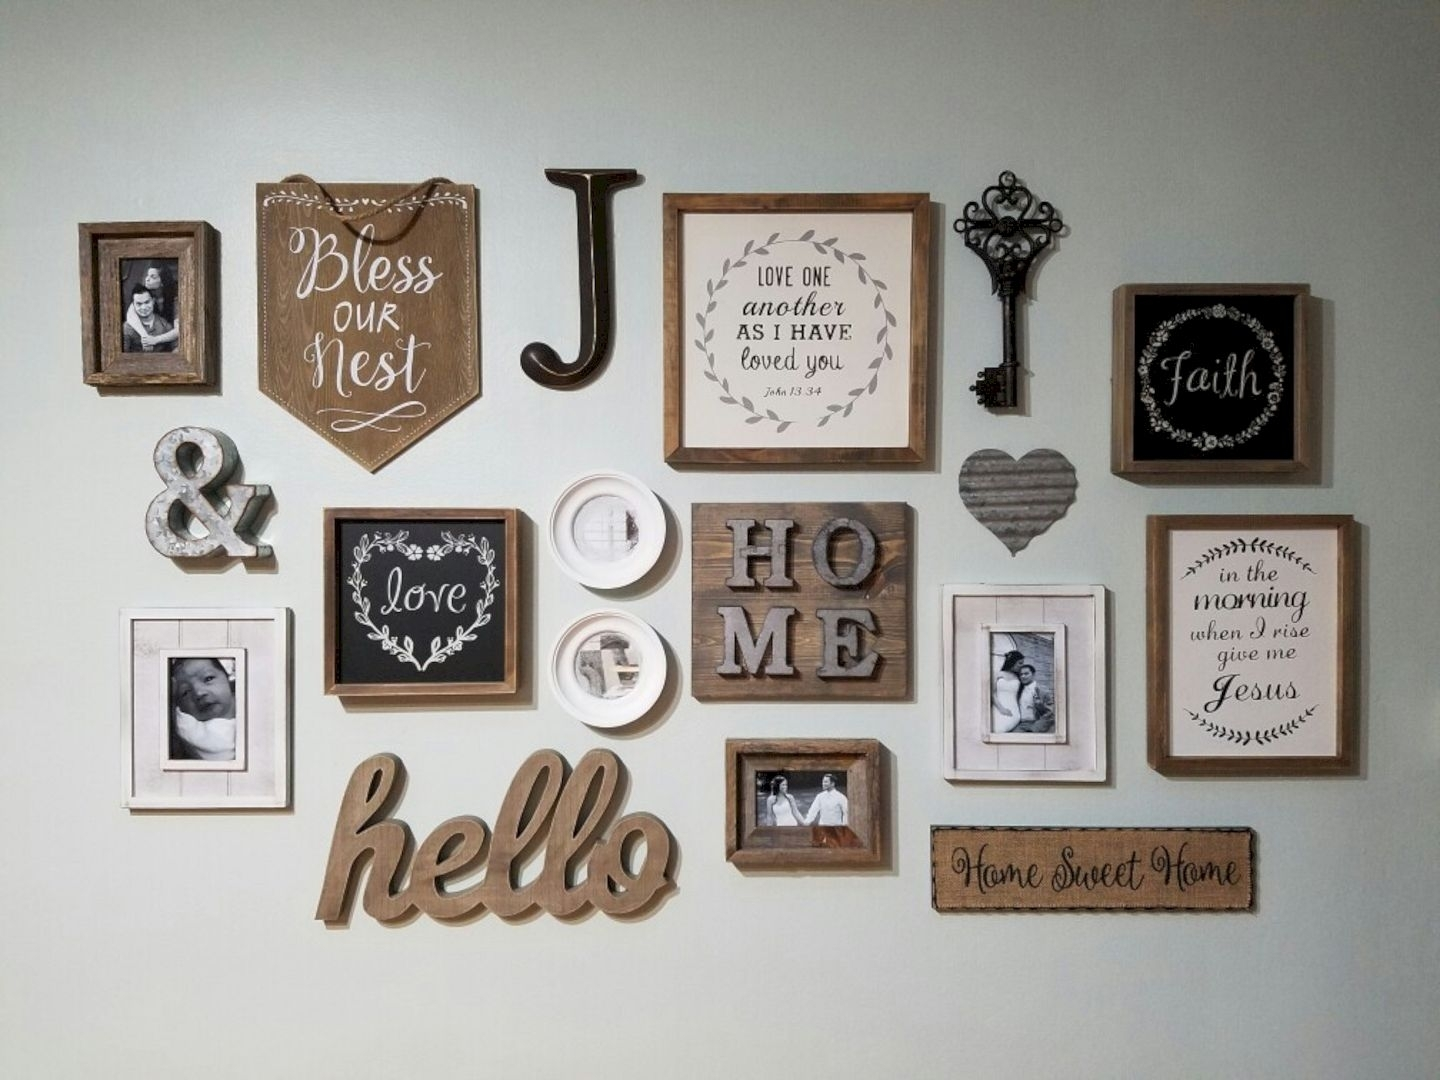 109 Wonderful Diy Rustic Wall Decor Ideas   Design Listicle Within Wall Art Decors (Gallery 3 of 20)